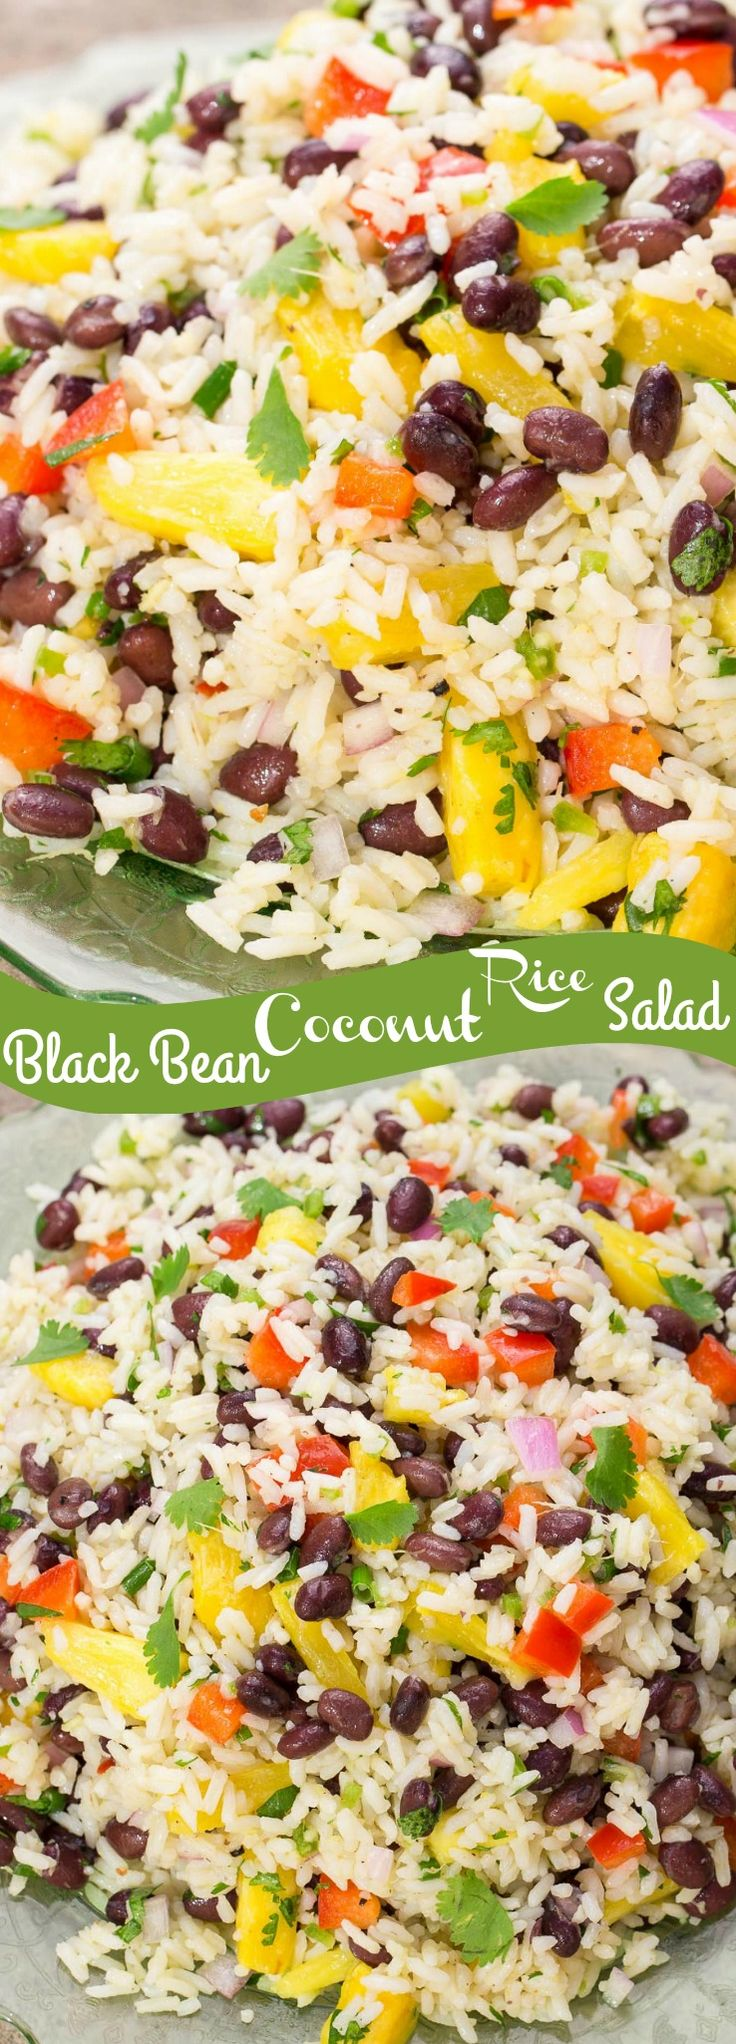 Black Bean Coconut Rice Salad is a perfect side dish for Picnic and BBQ Season! Nutritious and so delicious! Coconut rice, black beans, pineapple and more!